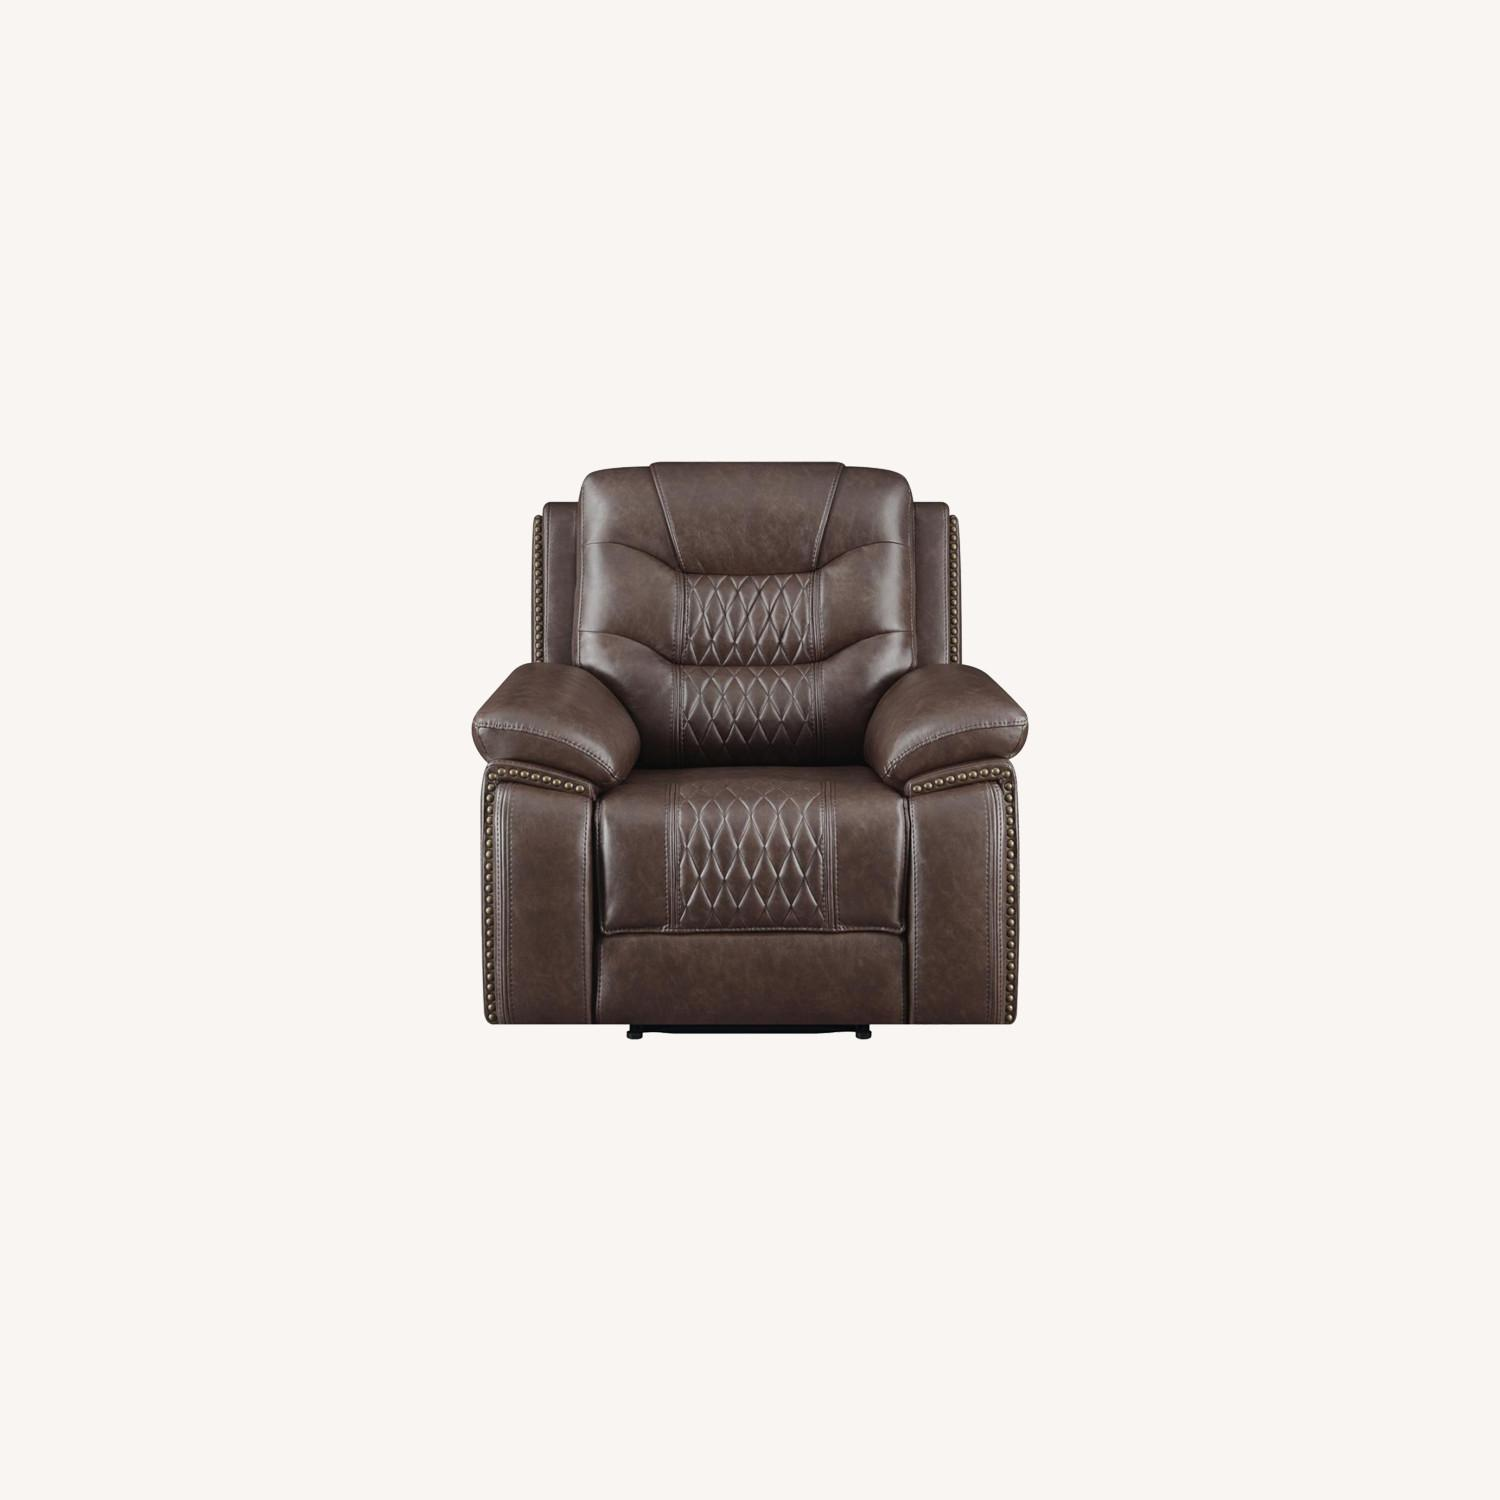 Recliner In Comfortable Brown Performance Leather - image-7